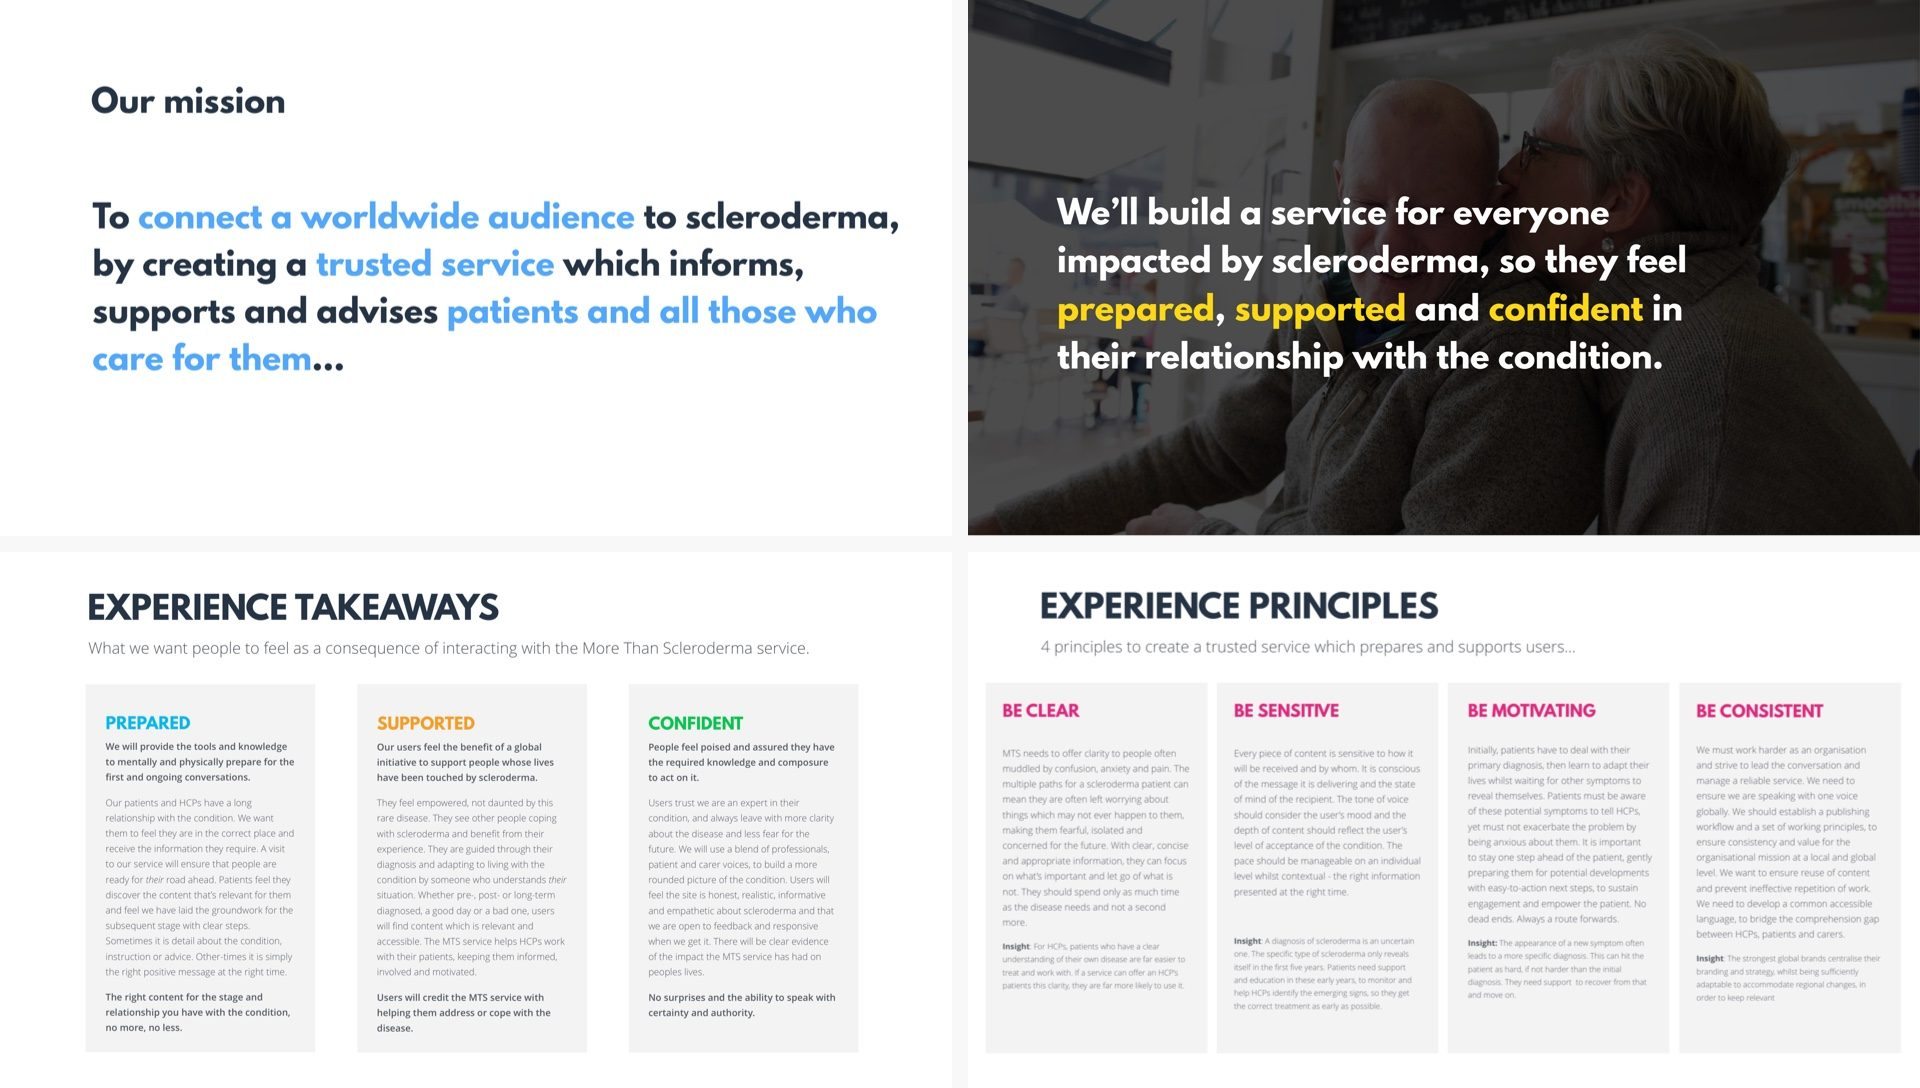 Design principles and brand values to support a design system